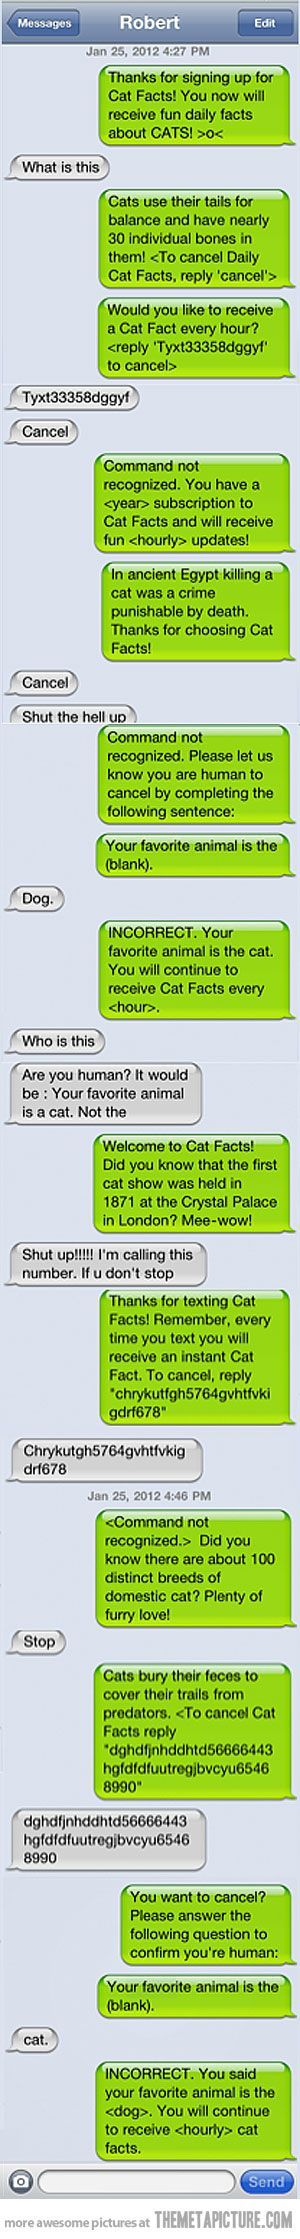 funny text message prank cats... I have a friend I could mess with for HOURS doing that.. I may need to change my number soon just to do it